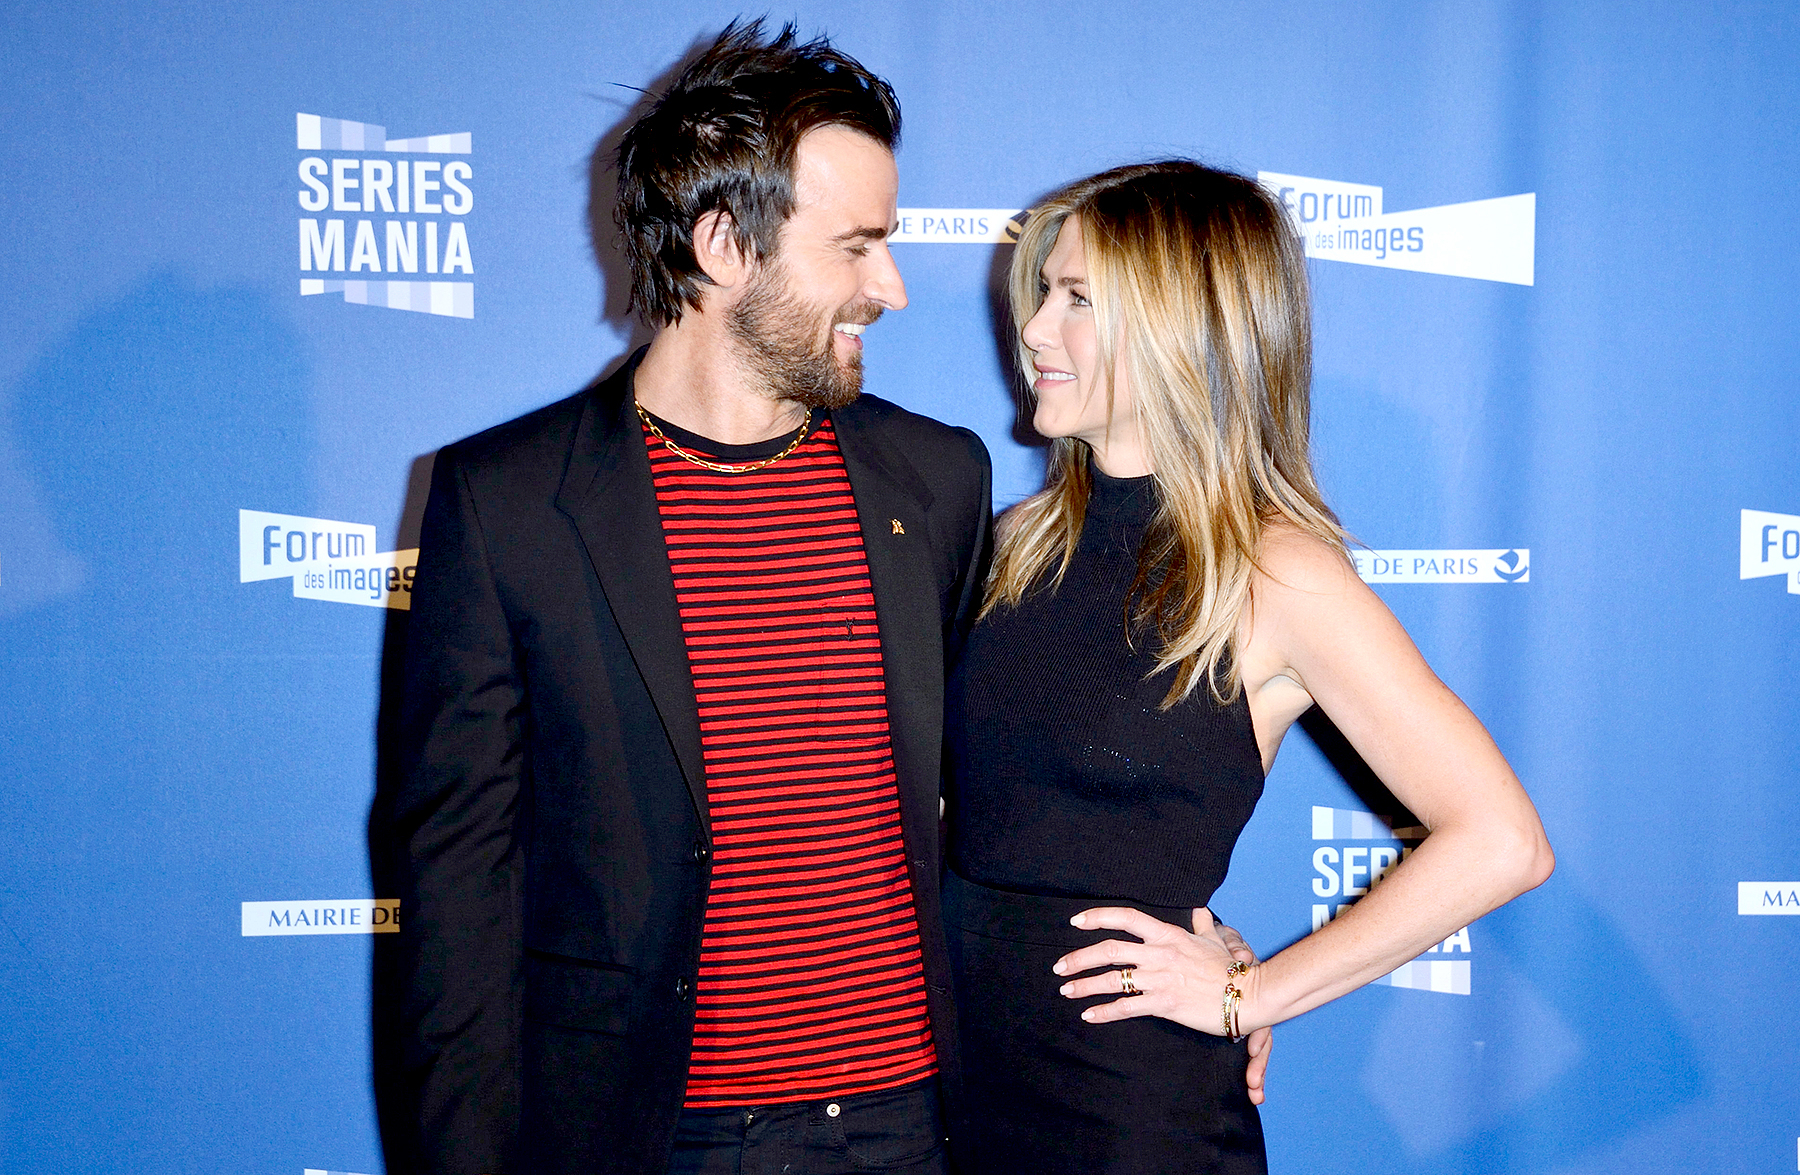 Justin Theroux and Jennifer Aniston at the Opening of Series Mania Festival 2017 in Paris, France on April 13, 2017.